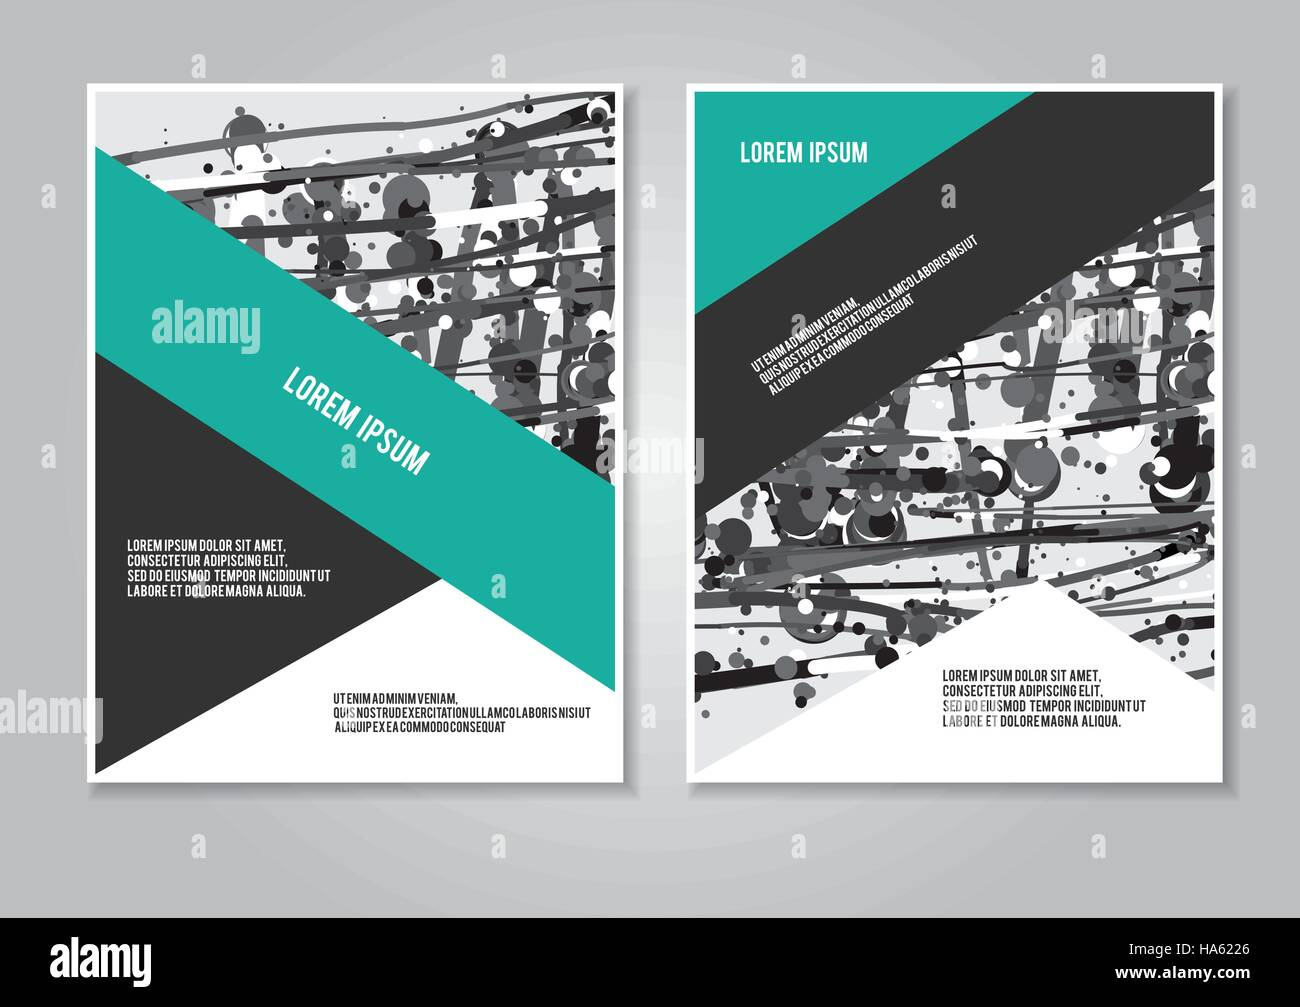 annual report template stock photos annual report template stock cover design annual report brochure booklet layout creative template vector illustration promotion page